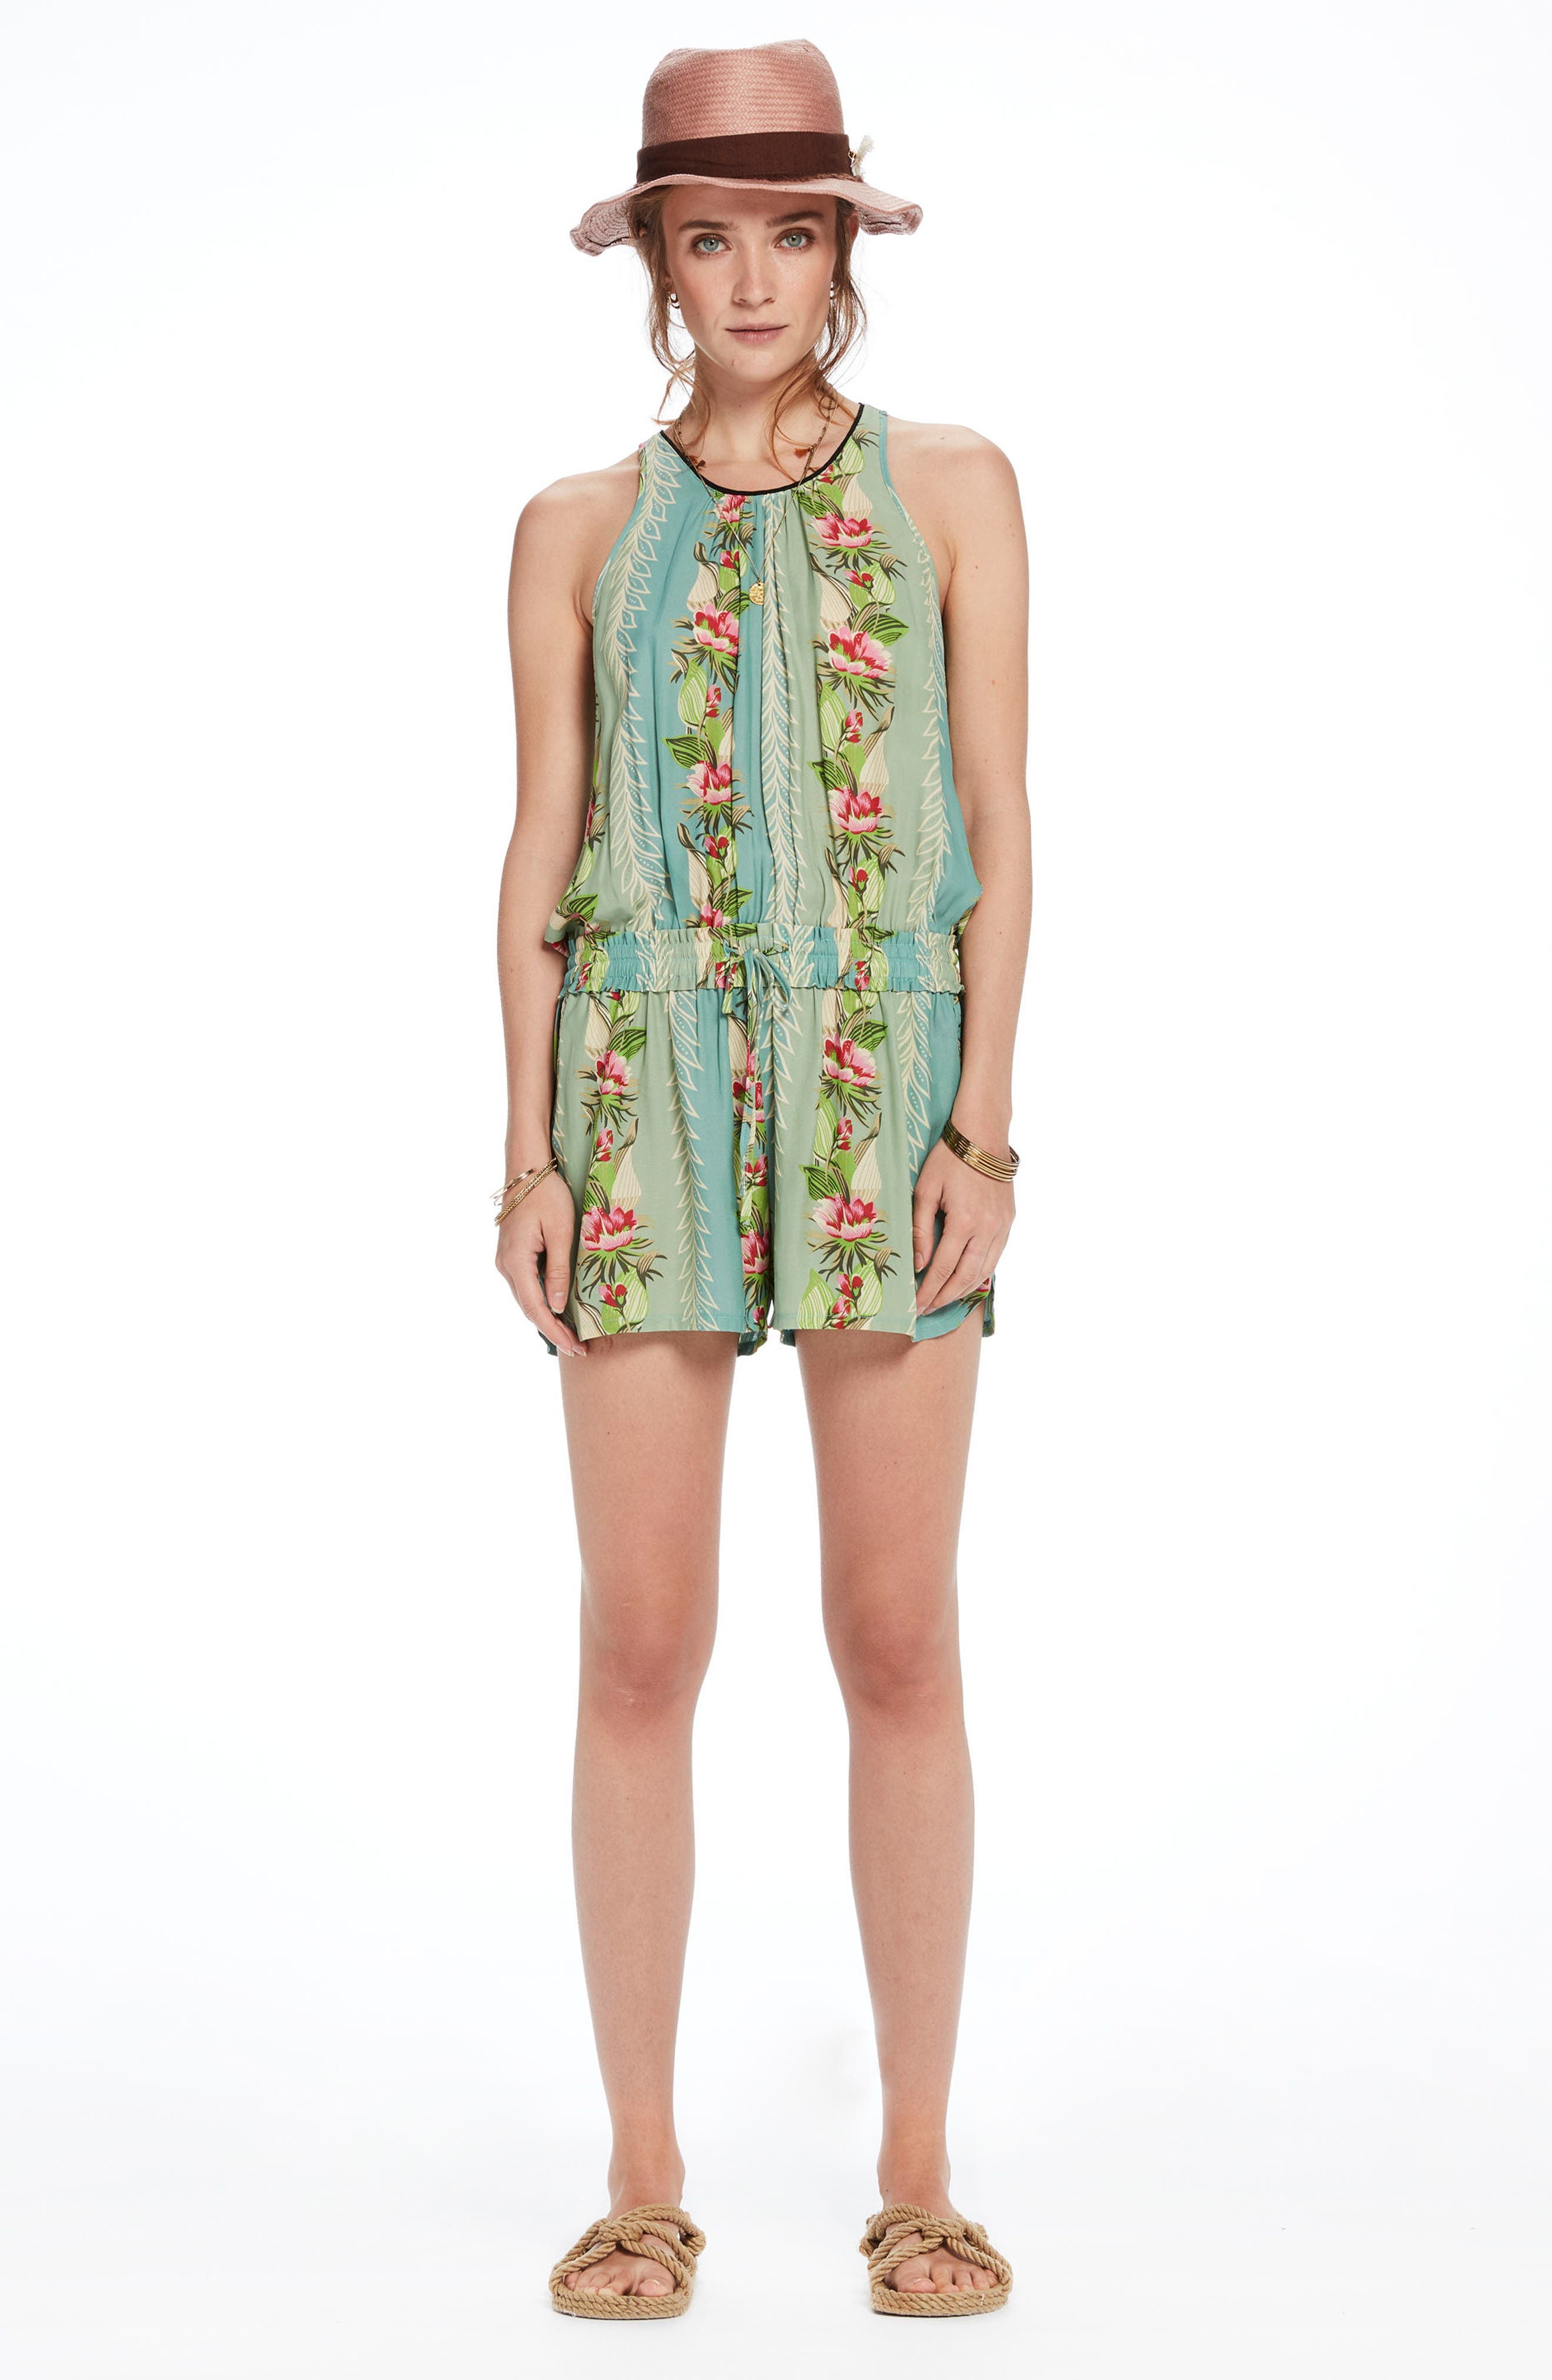 SCOTCH & SODA,                             Print All in One Romper,                             Alternate thumbnail 9, color,                             440